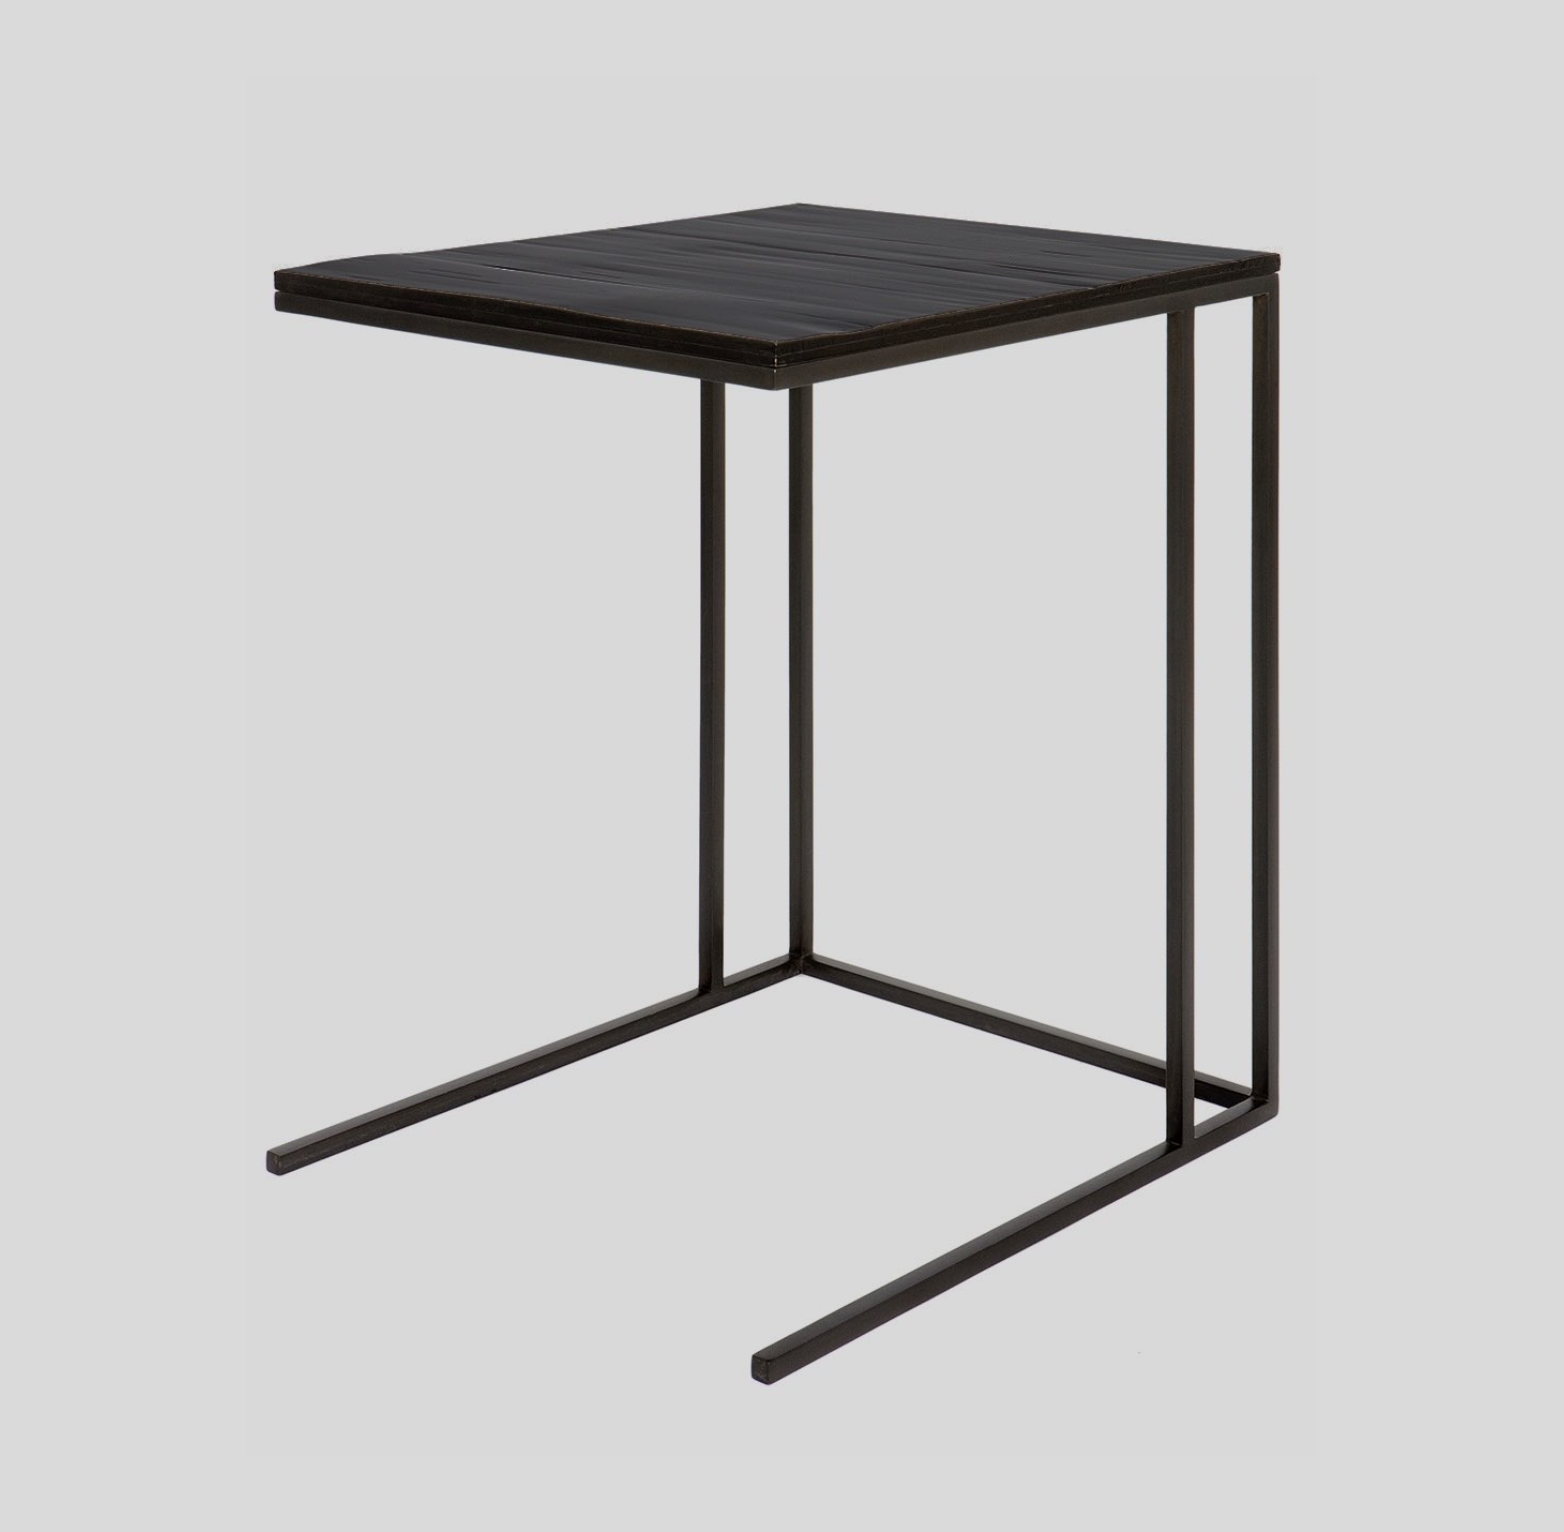 Aguirre Design - Suji Side Table